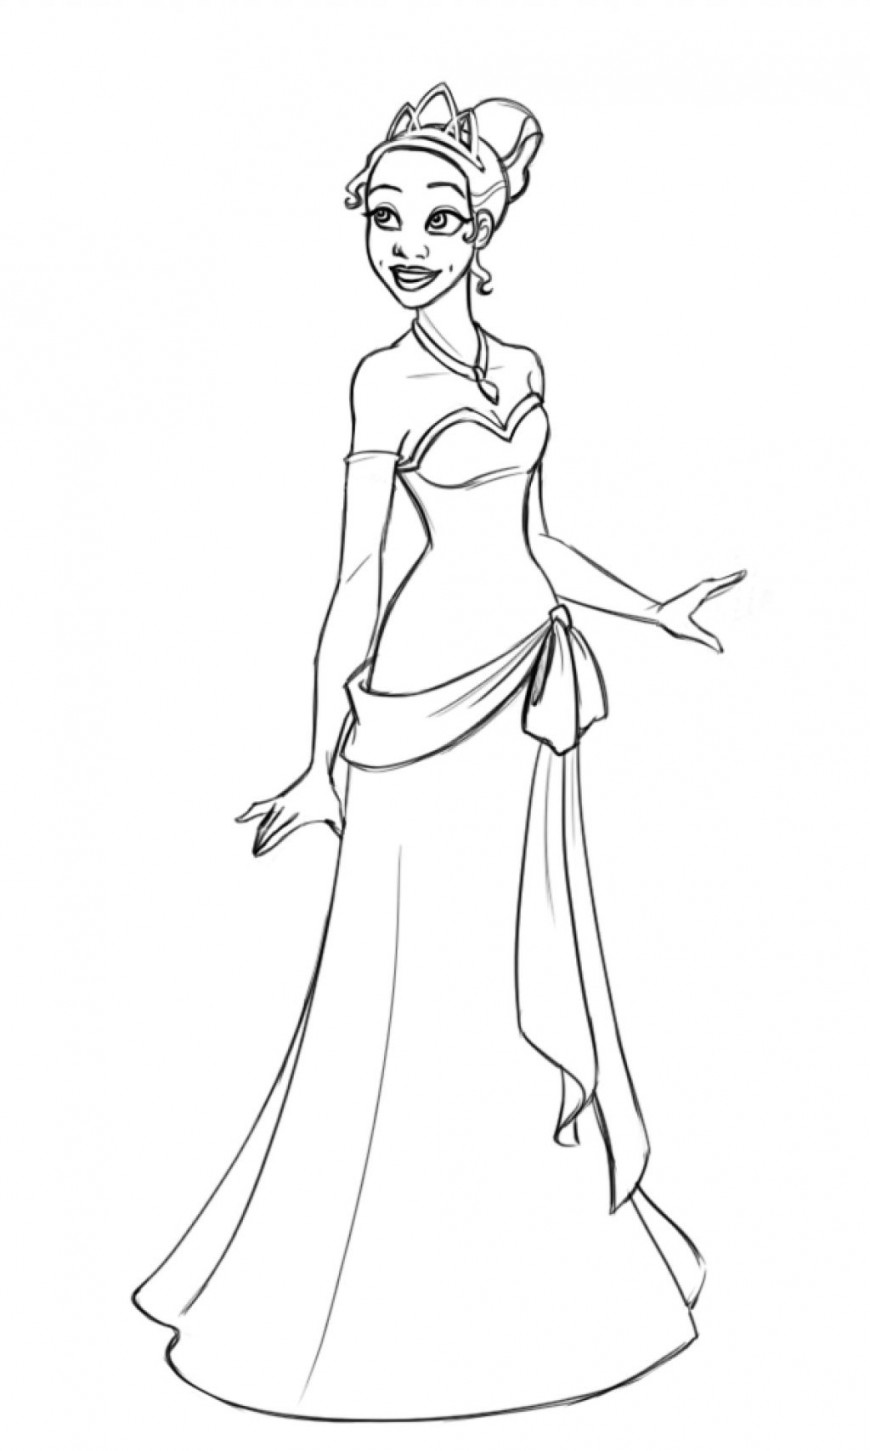 Princess tiana coloring pages download